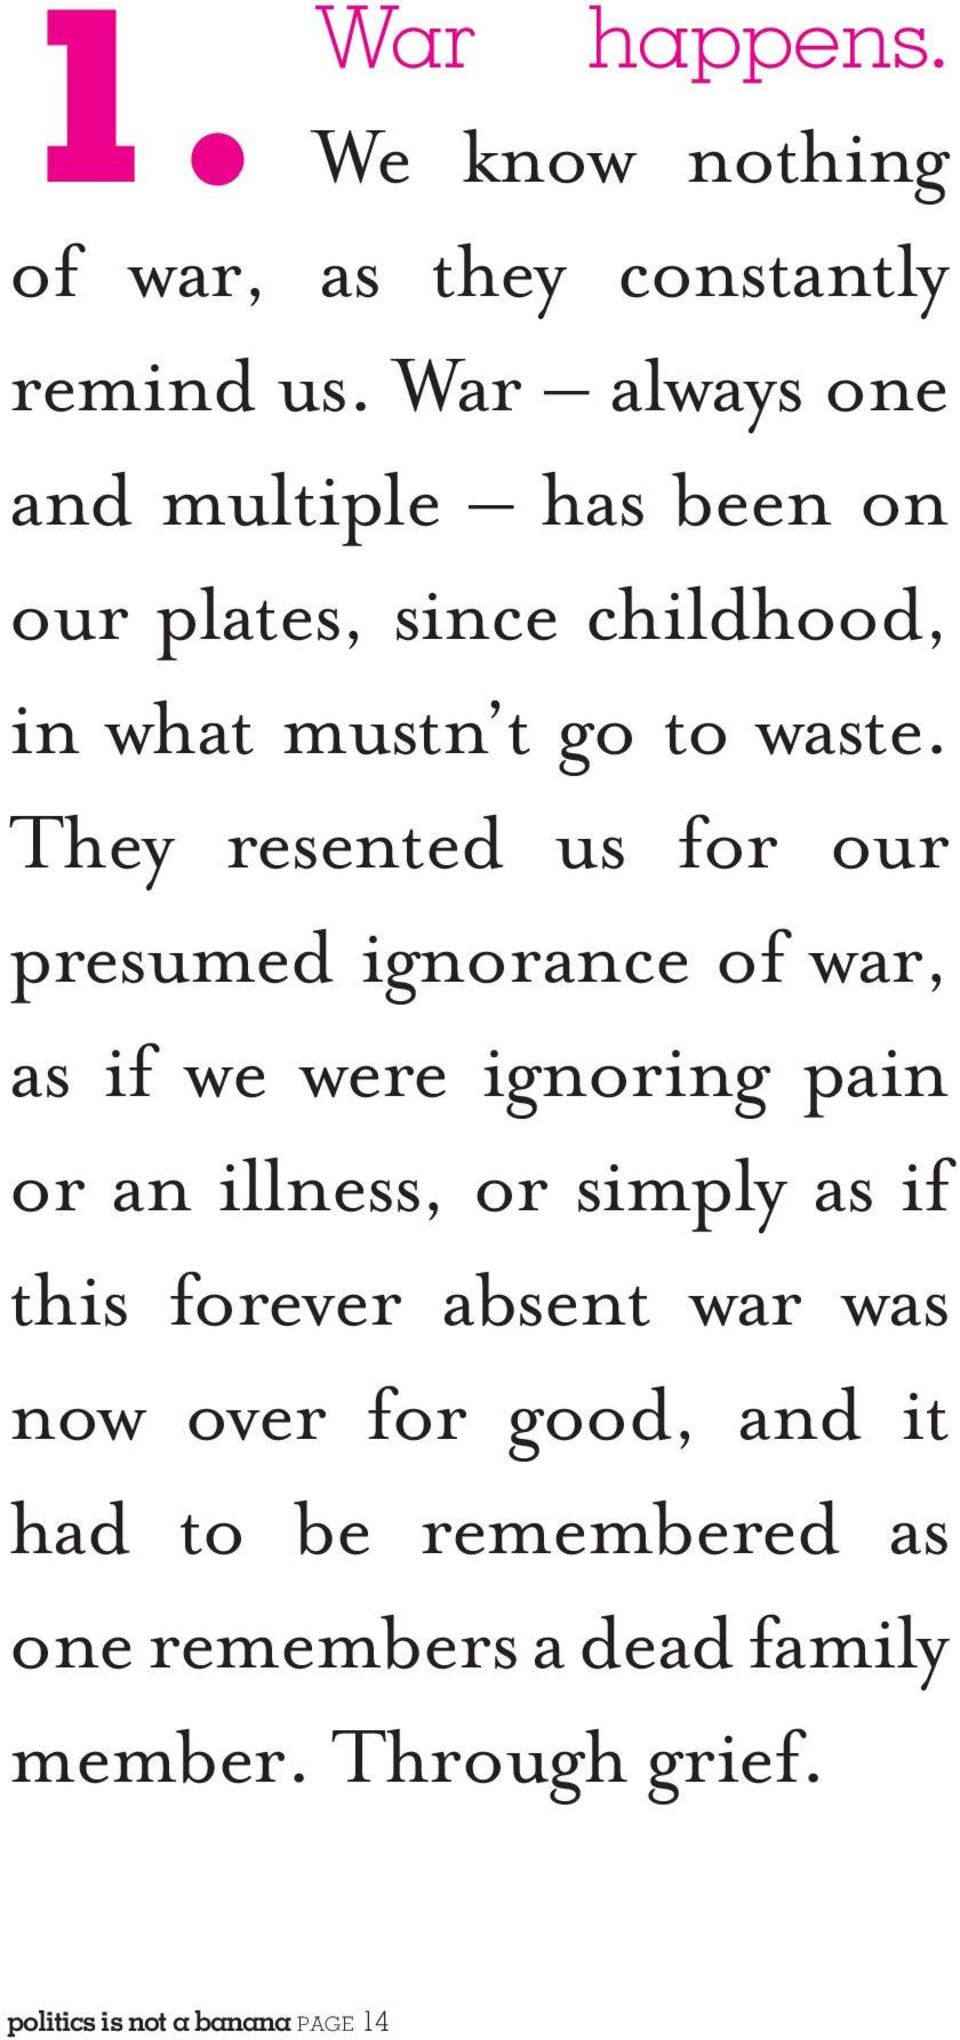 They resented us for our presumed ignorance of war, as if we were ignoring pain or an illness, or simply as